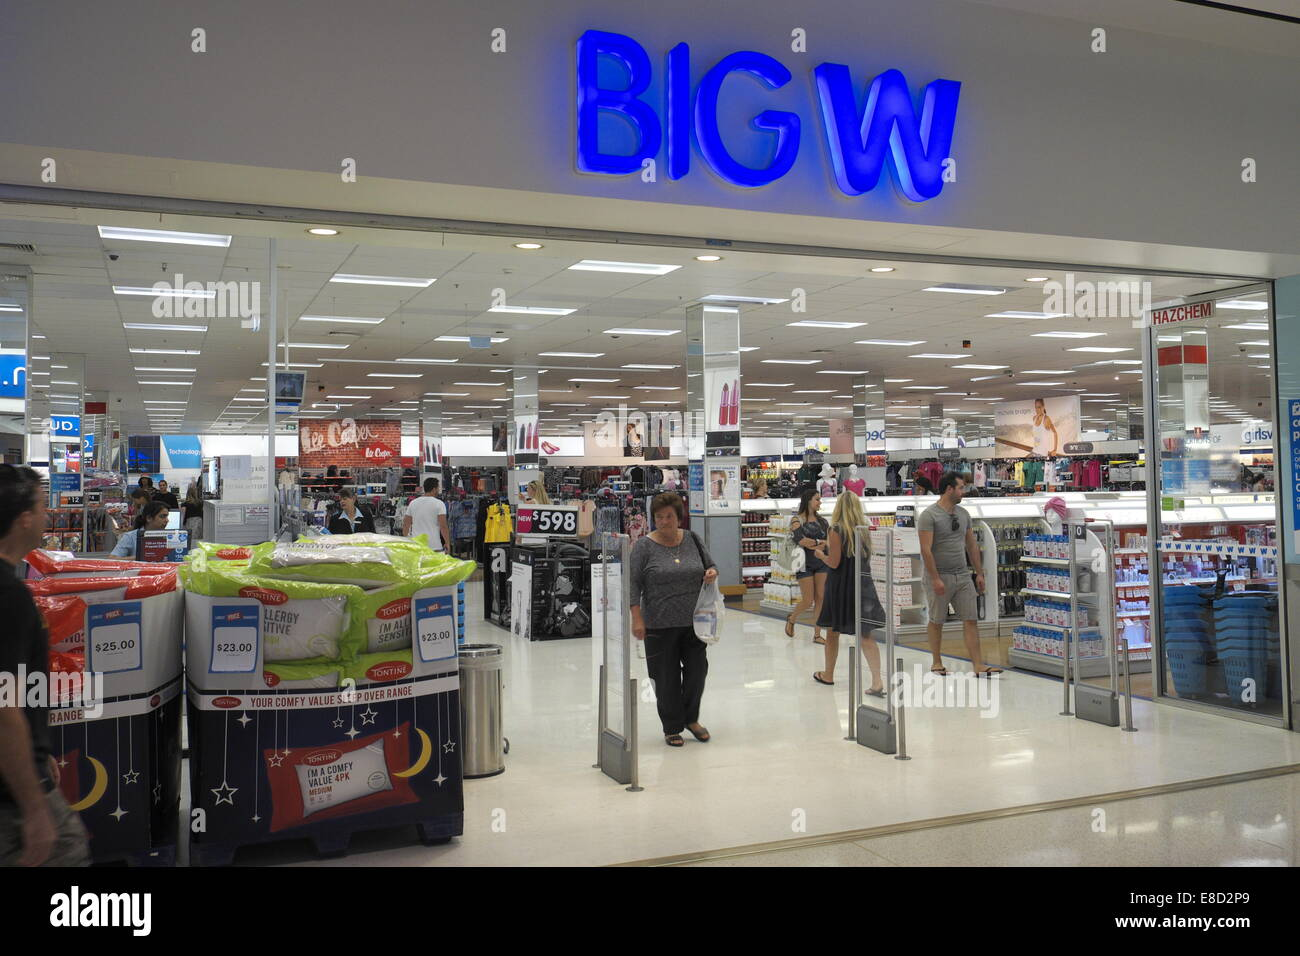 d81207e36481c Big W department store , owned by australian grocery retailer Woolworths,  in a shopping mall in Sydney